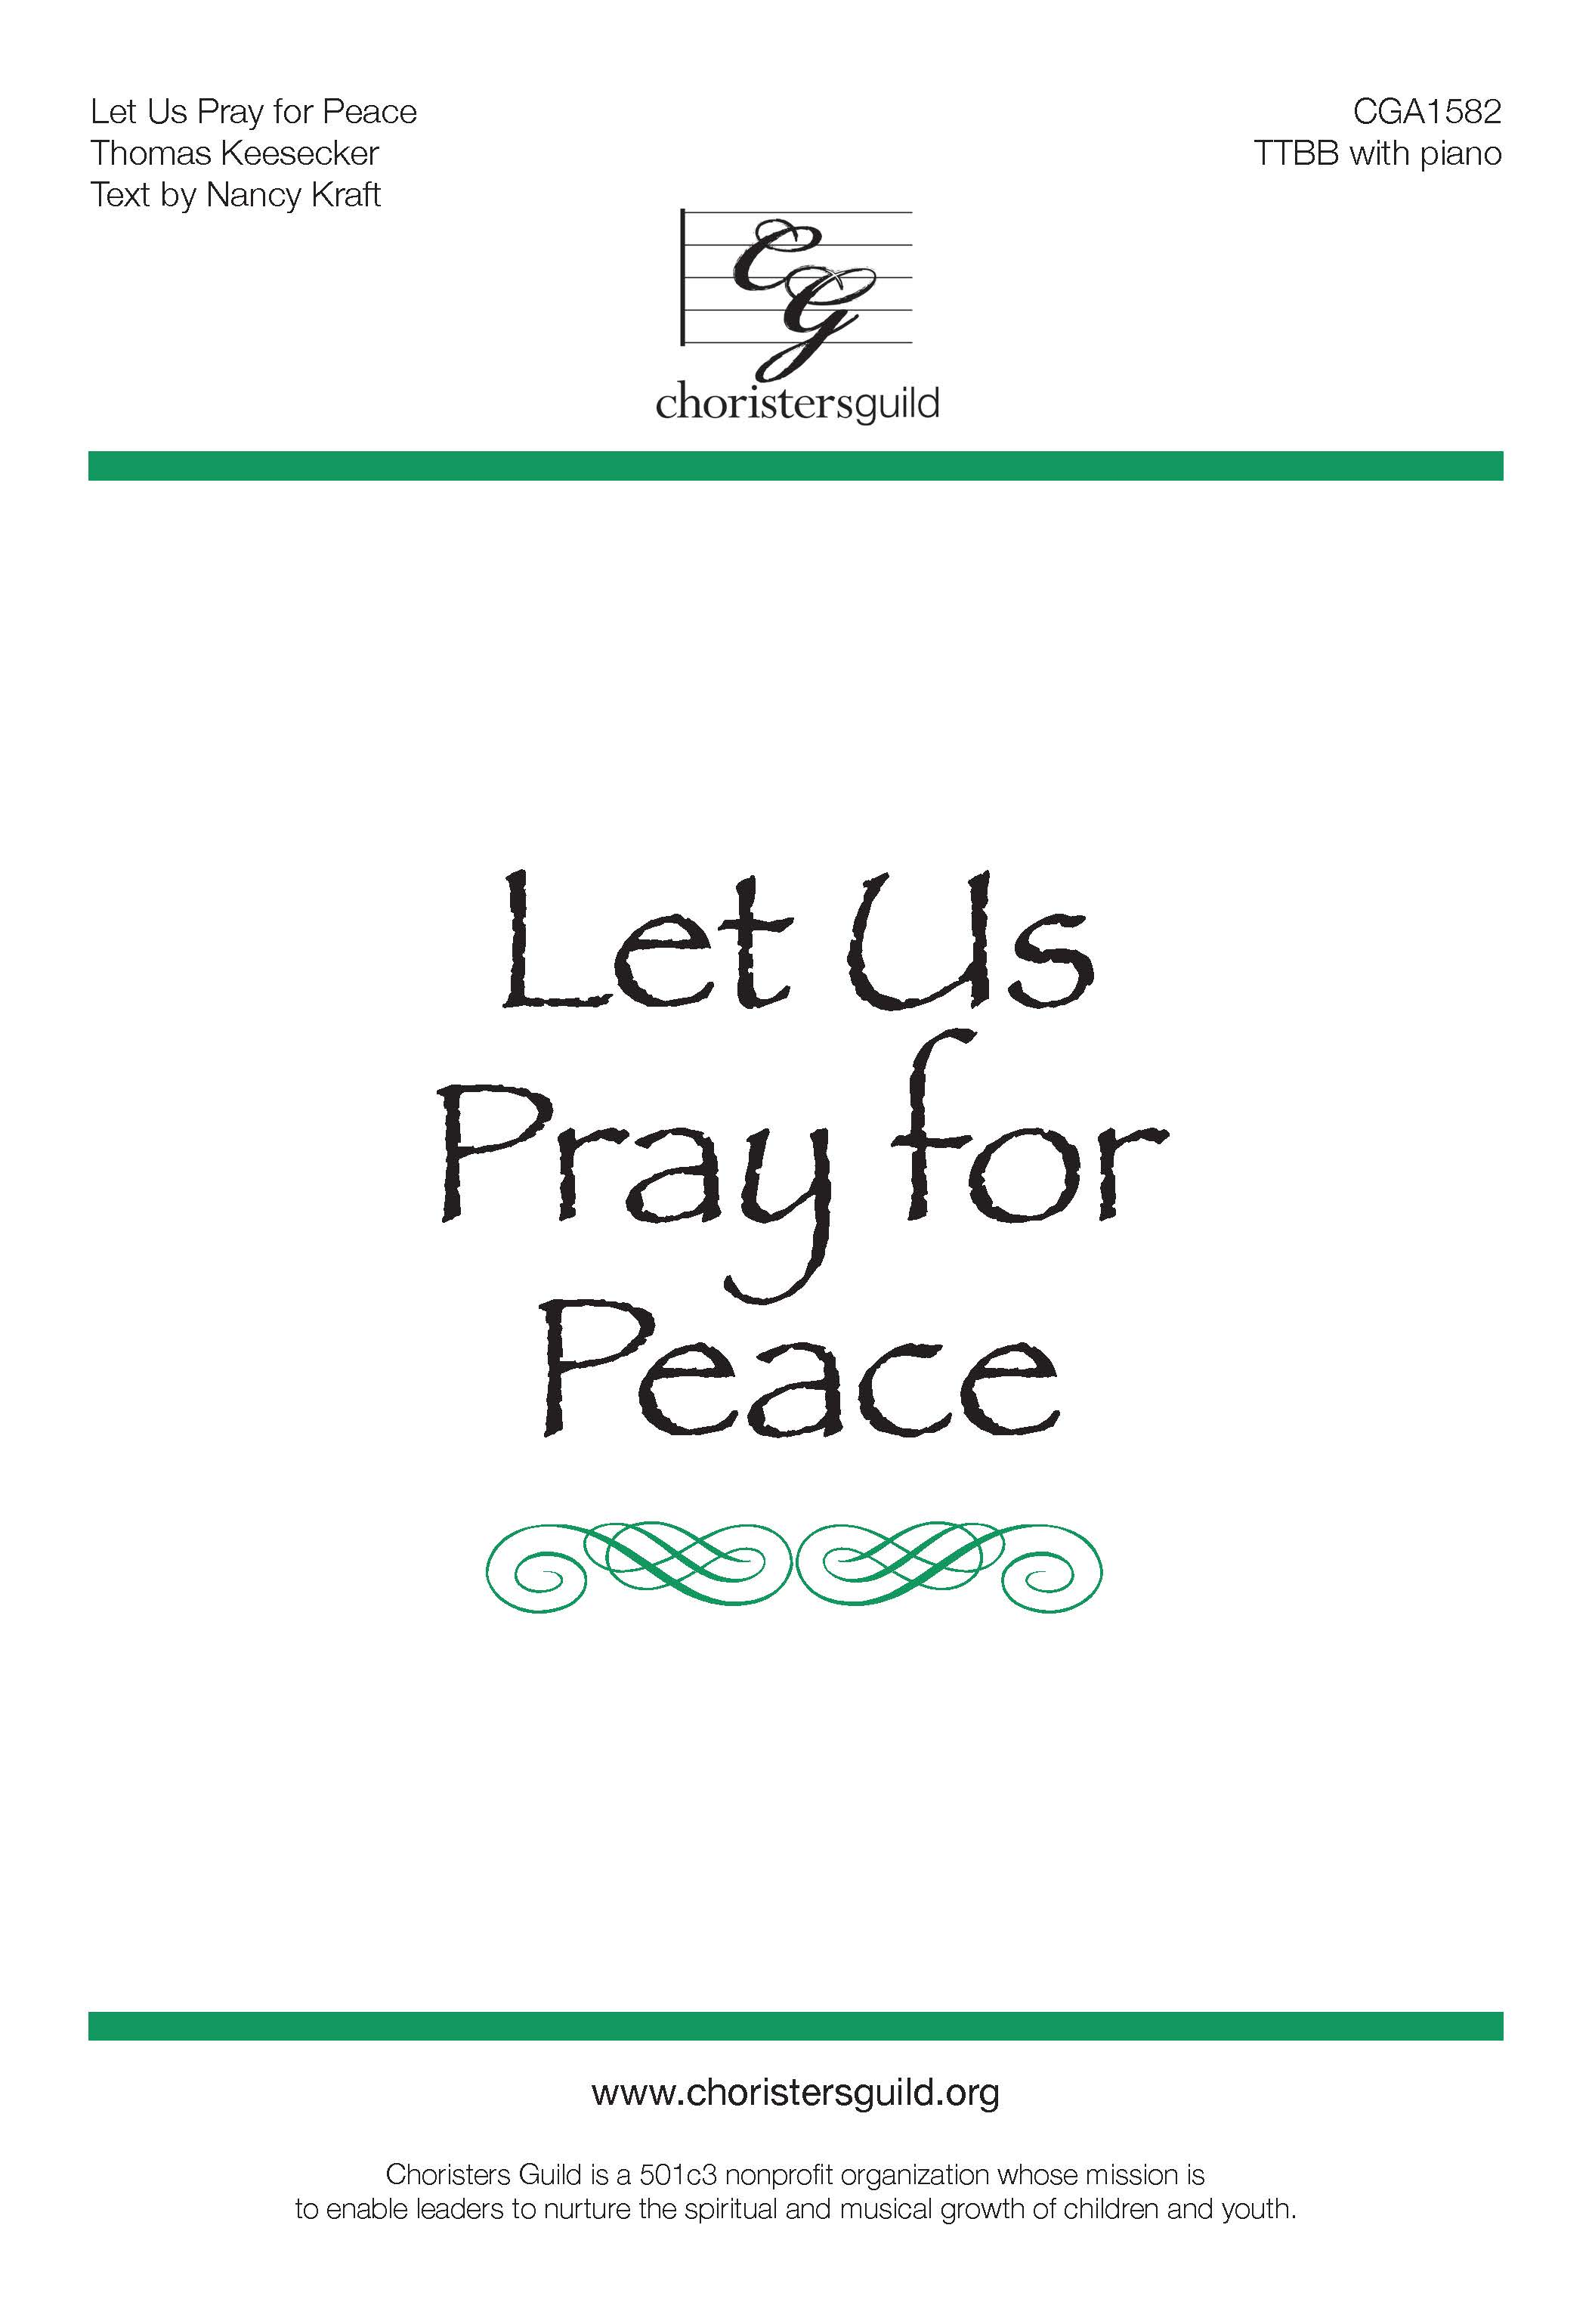 Let Us Pray for Peace (TTBB)